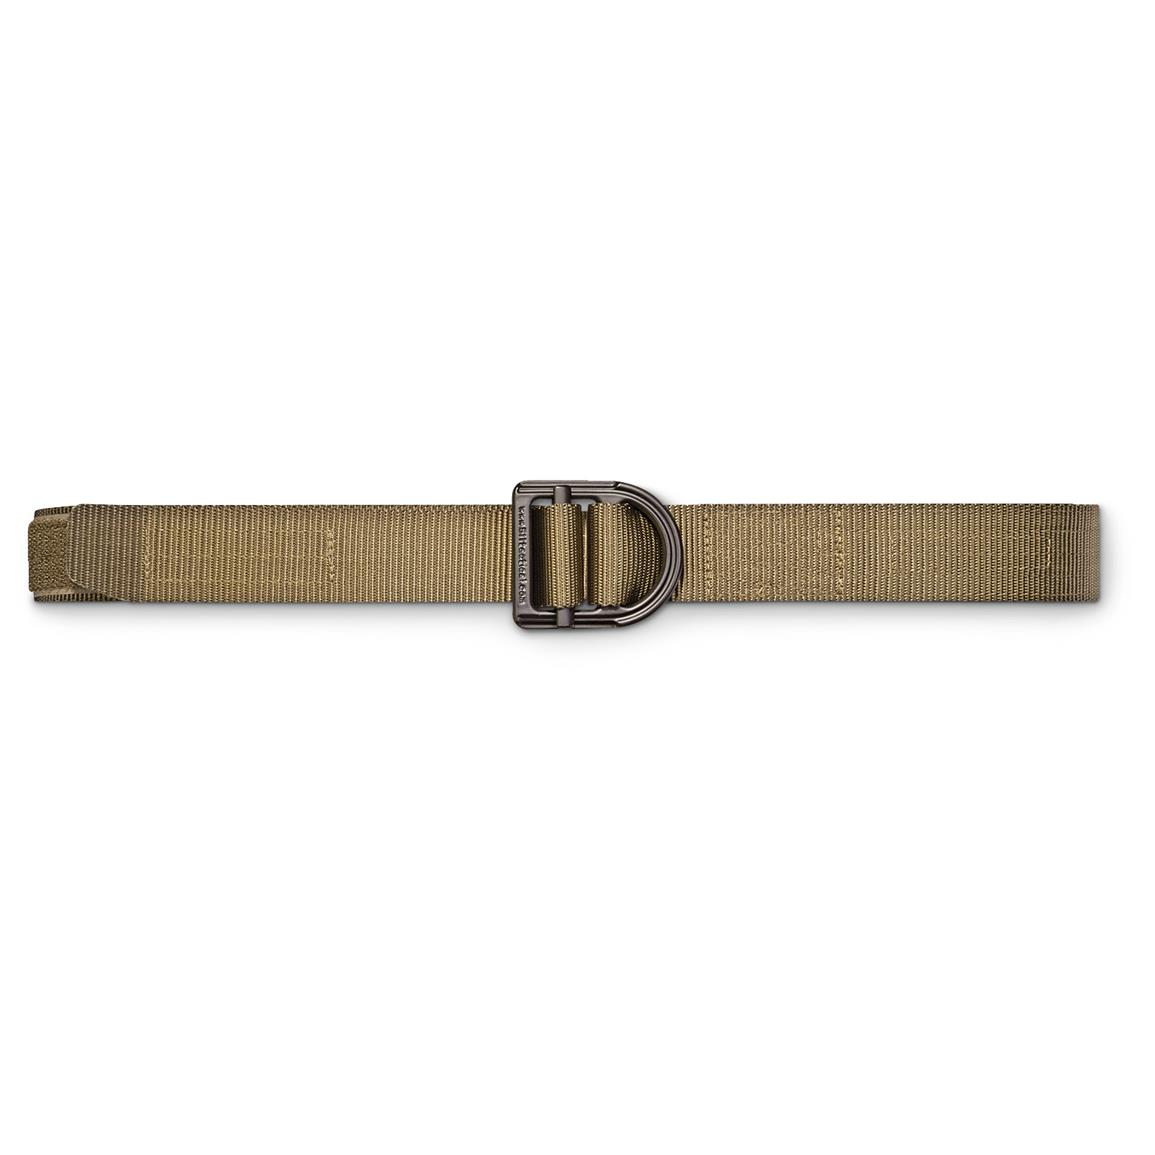 "5.11 Tactical 1 1/2"" Wide Trainer Belt, TDU Green"